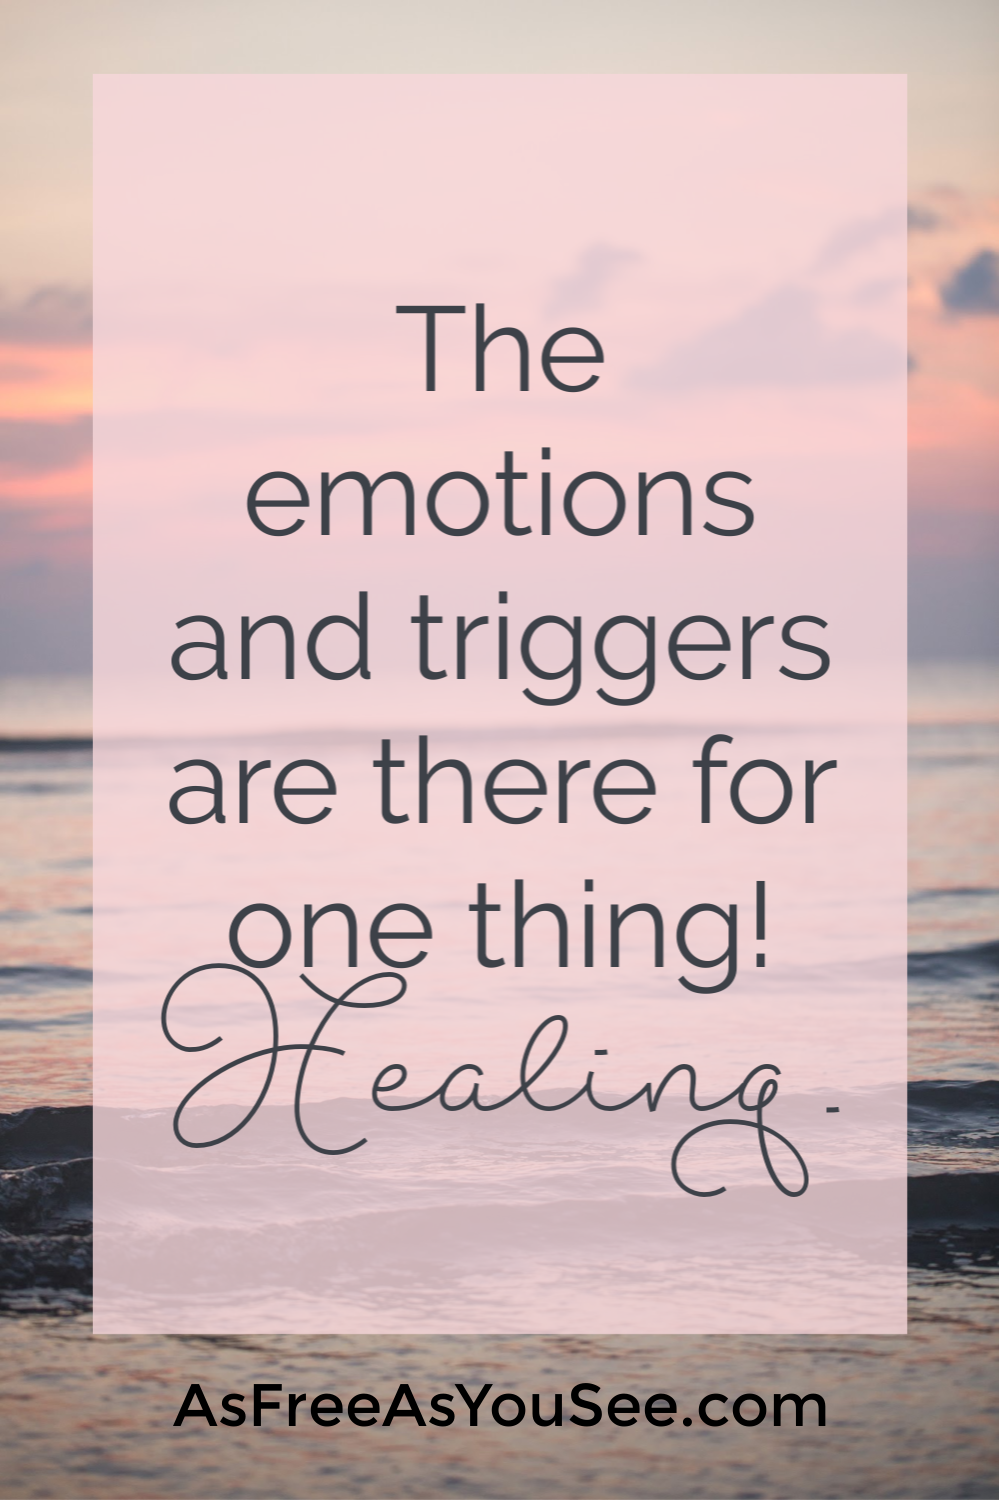 In this self-help blog learn 5 reasons why journaling about your triggers is so important.  Learn why these 5 tips can inspire you to start a journal today and let it transform your life into something more peaceful.  Read the blog and get the downloadable freebie.